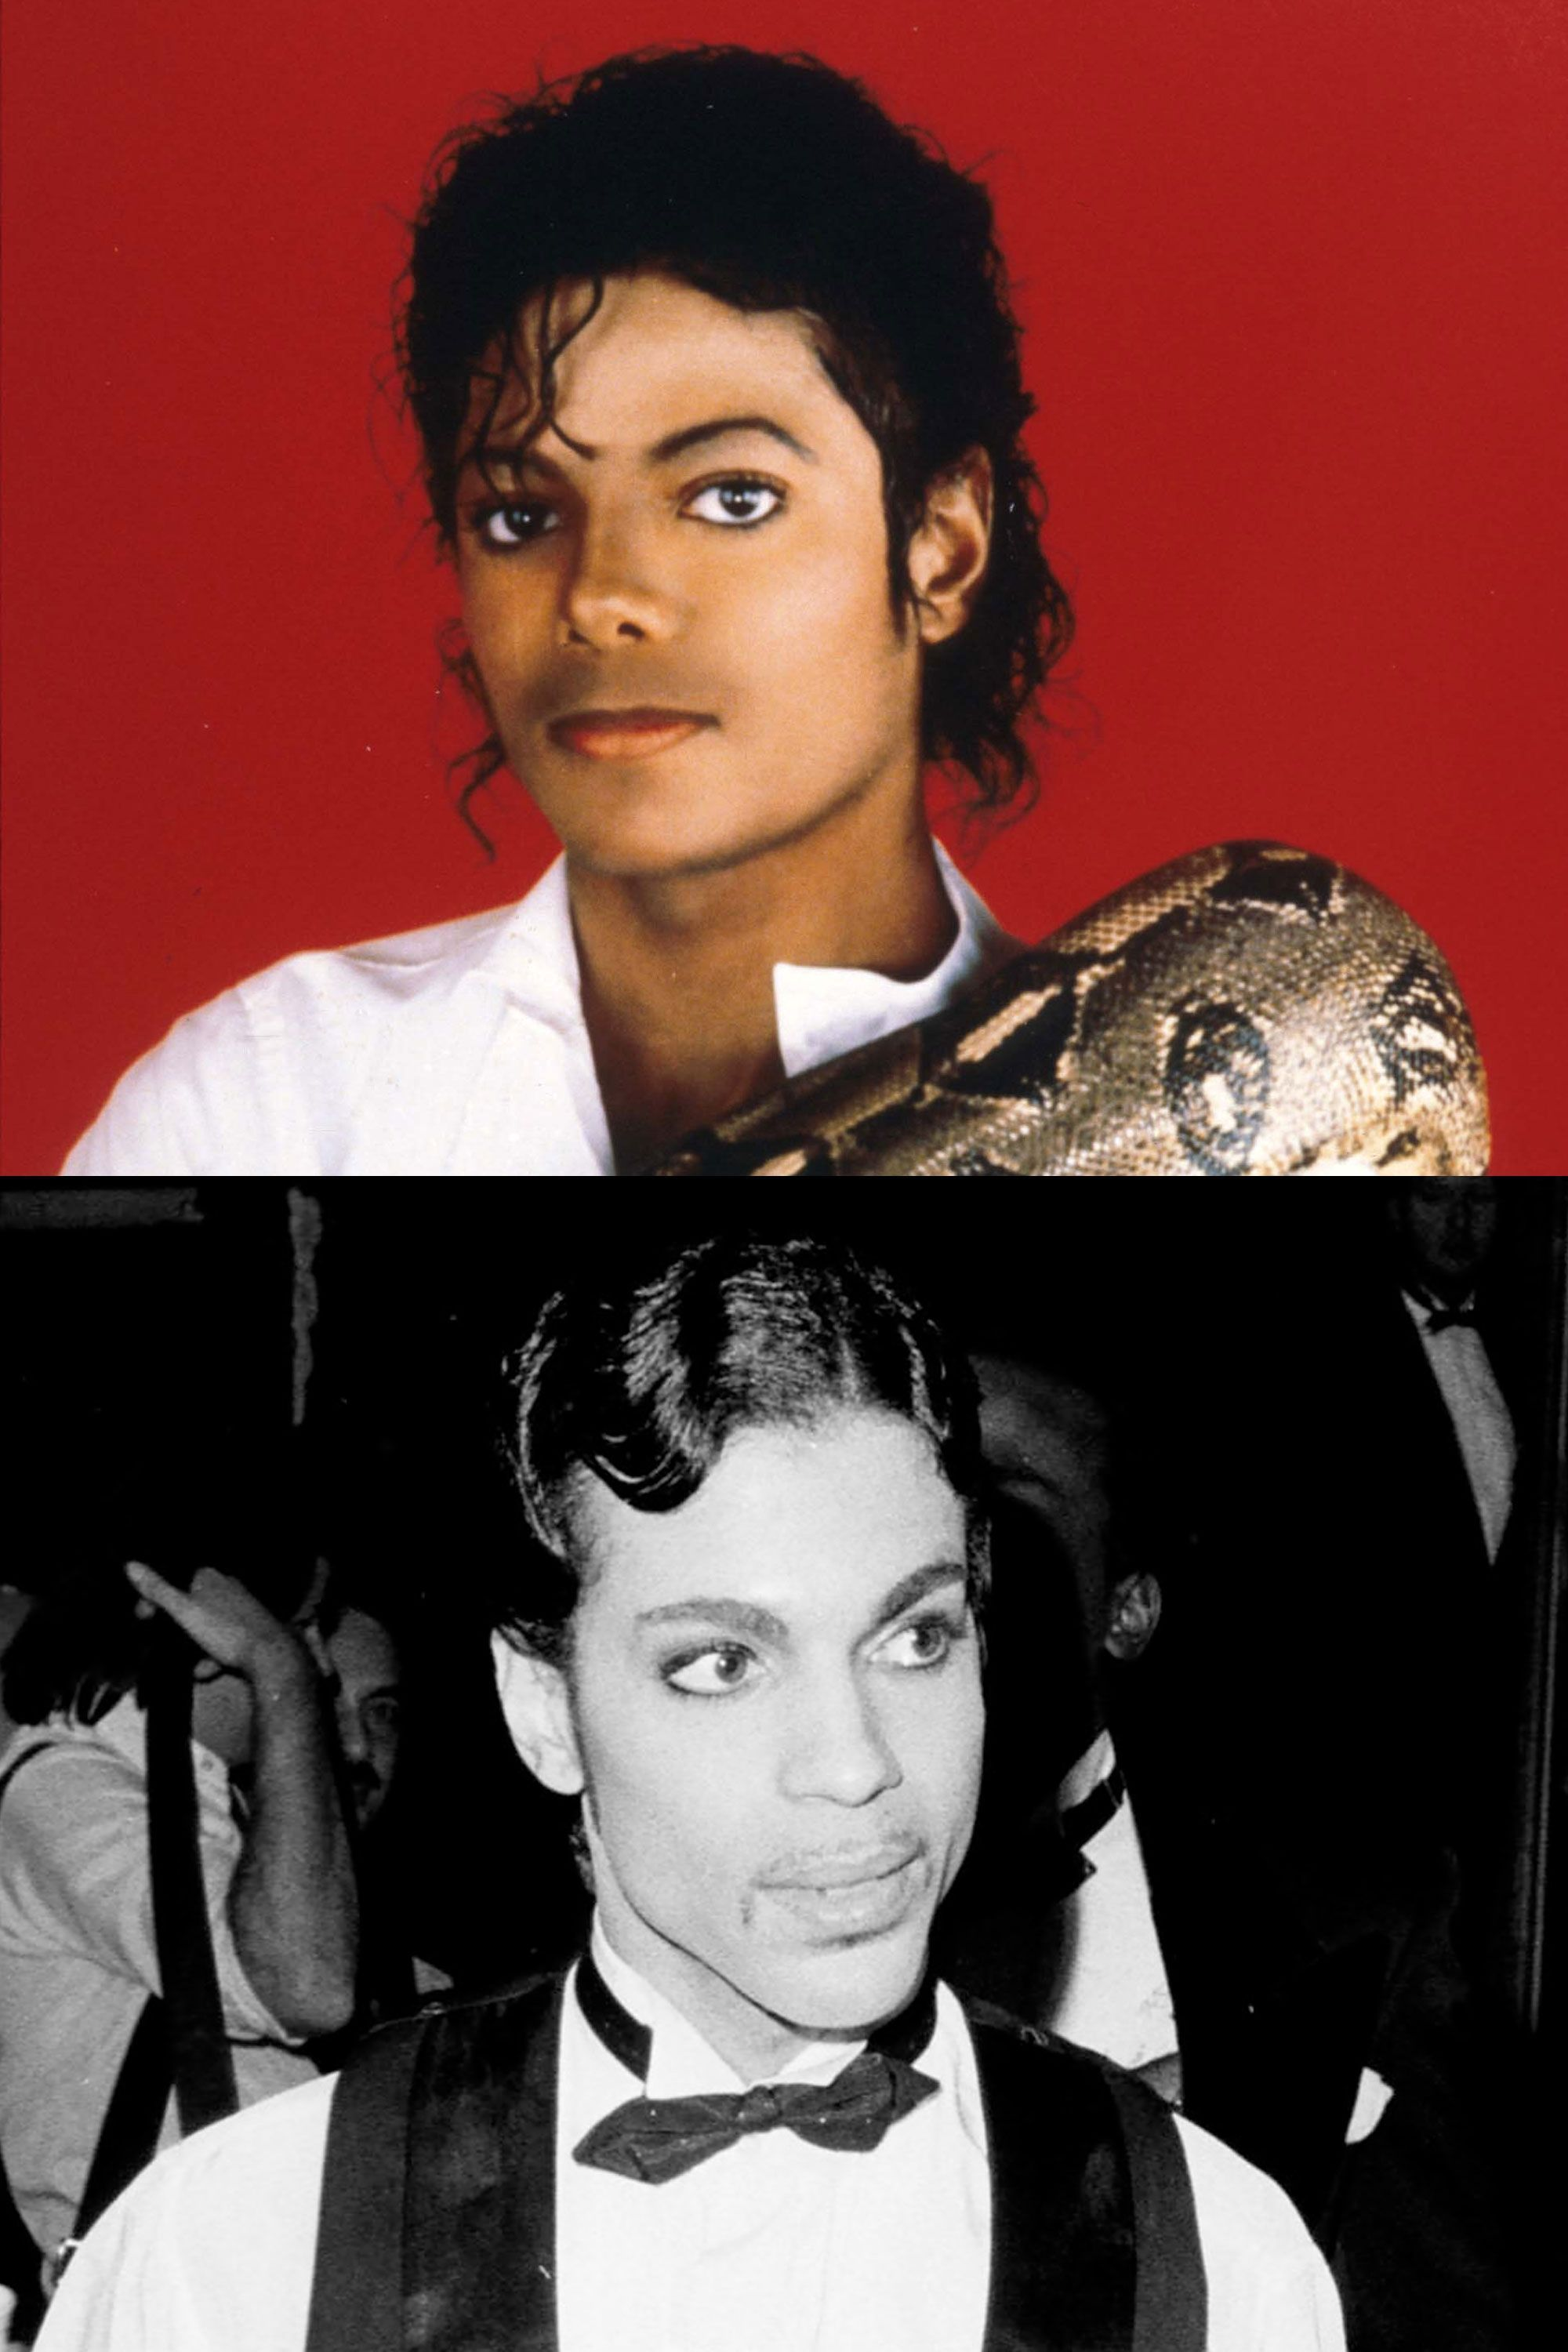 """<p>When two pop icons release huge albums just a month apart, you've got a sure-fire recipe for a feud. That was the case when Prince debuted <em data-redactor-tag=""""em"""">1999</em> in October and MJ quickly followed suit with <em data-redactor-tag=""""em"""">Thriller</em>. The two late stars stayed quiet at the time, so not much more is known about why they butted heads, but according to <em data-redactor-tag=""""em"""">Rolling Stone</em> editor and Jackson biographer Steve Knopper, that silence was intentional. """"I think both of those guys had an interest in keeping it somewhat mysterious because they are both mysterious dudes,"""" <a href=""""http://www.esquire.com/entertainment/music/a38630/michael-jackson-mj-biography/"""">he told <em data-redactor-tag=""""em"""">Esquire</em></a>.</p>"""